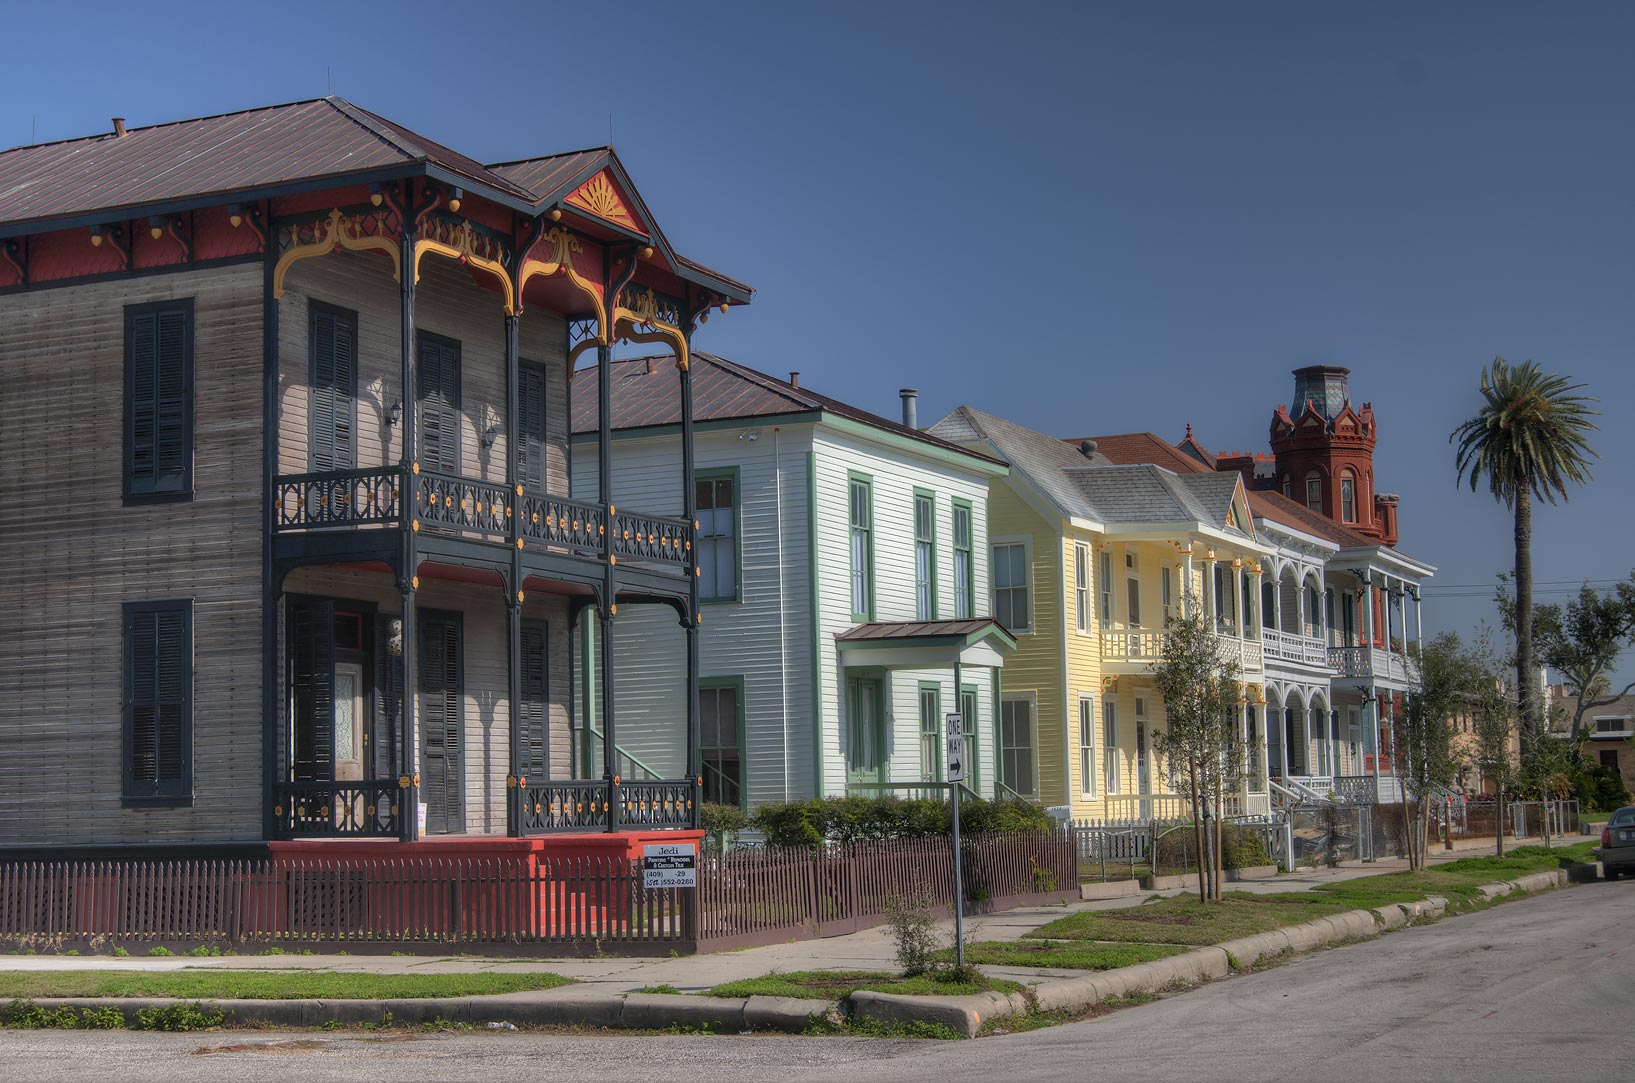 Postoffice St. in East End Historic District...1888) in foreground. Galveston, Texas